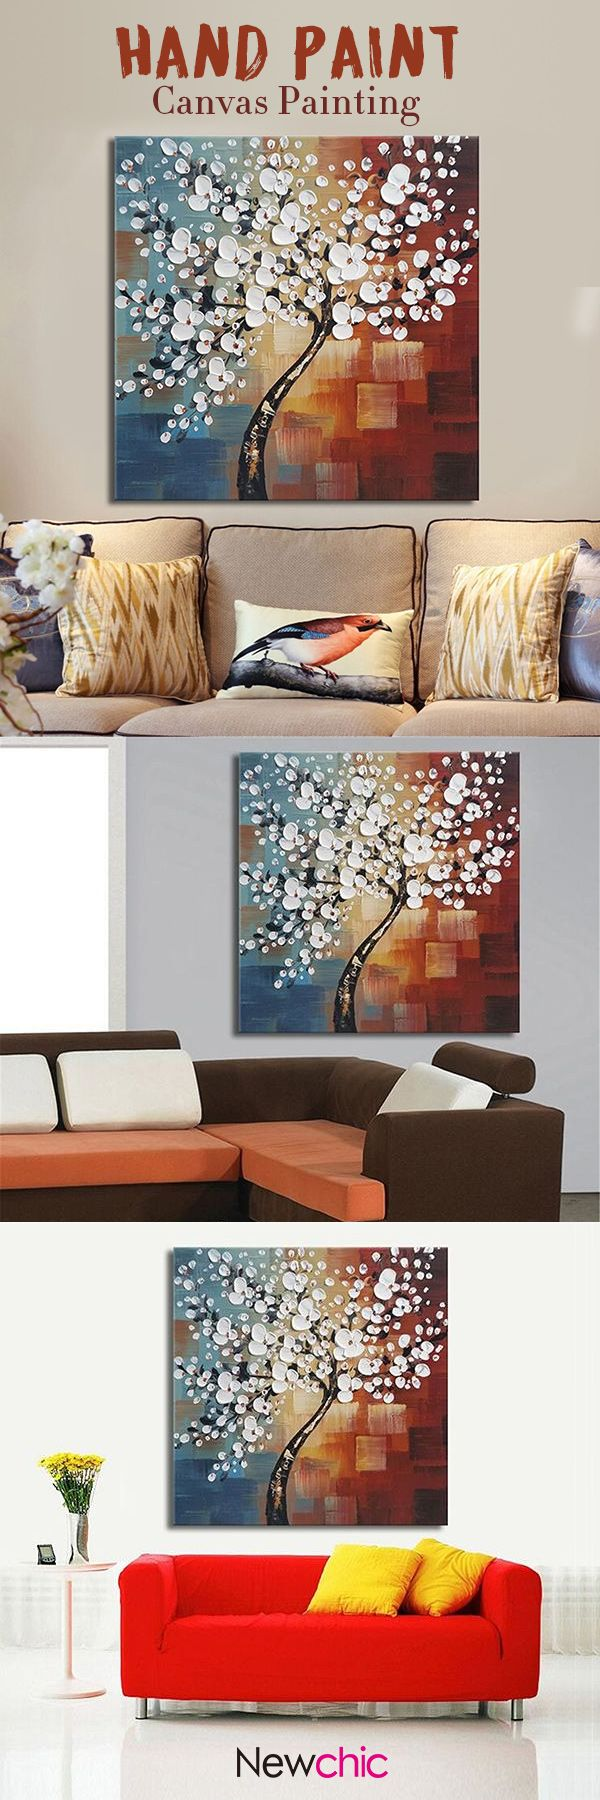 US$8.00- Framed Hand Paint Canvas Painting Home Decor Wall Art Abstract Flower Tree Decoration#newchic#homedecor